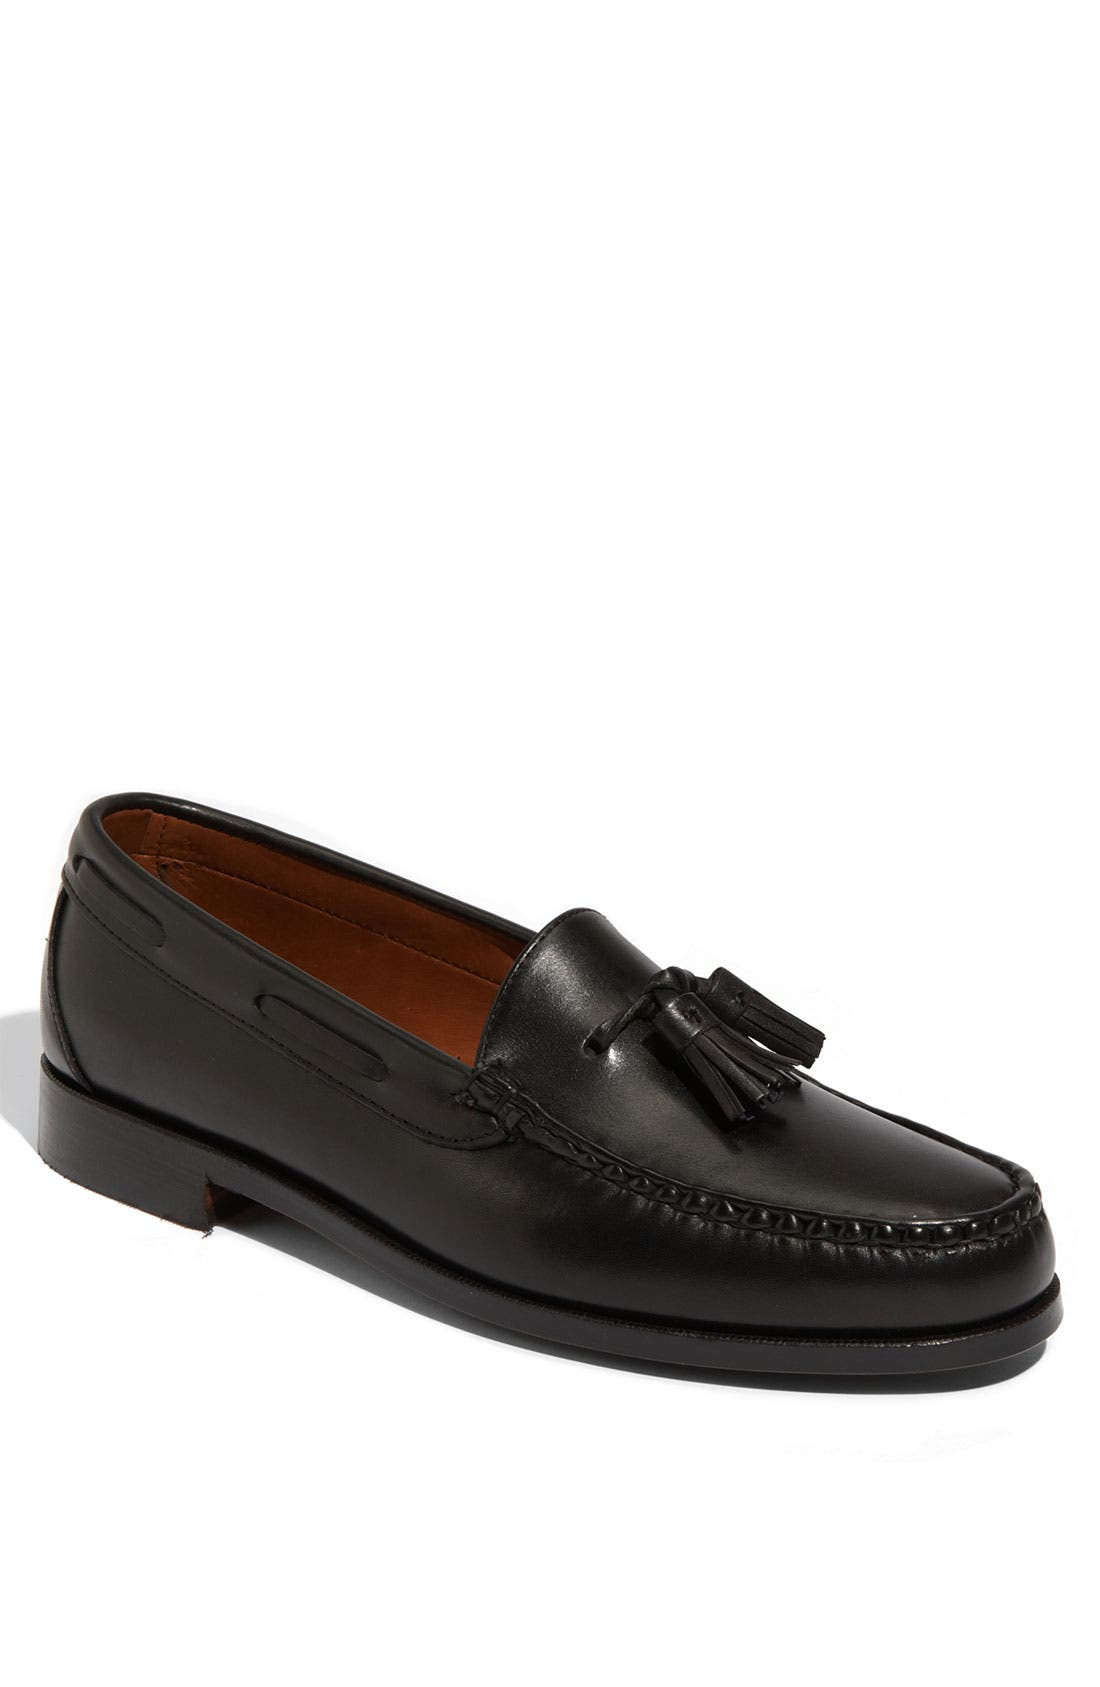 Main Image - Allen Edmonds 'Naples' Loafer